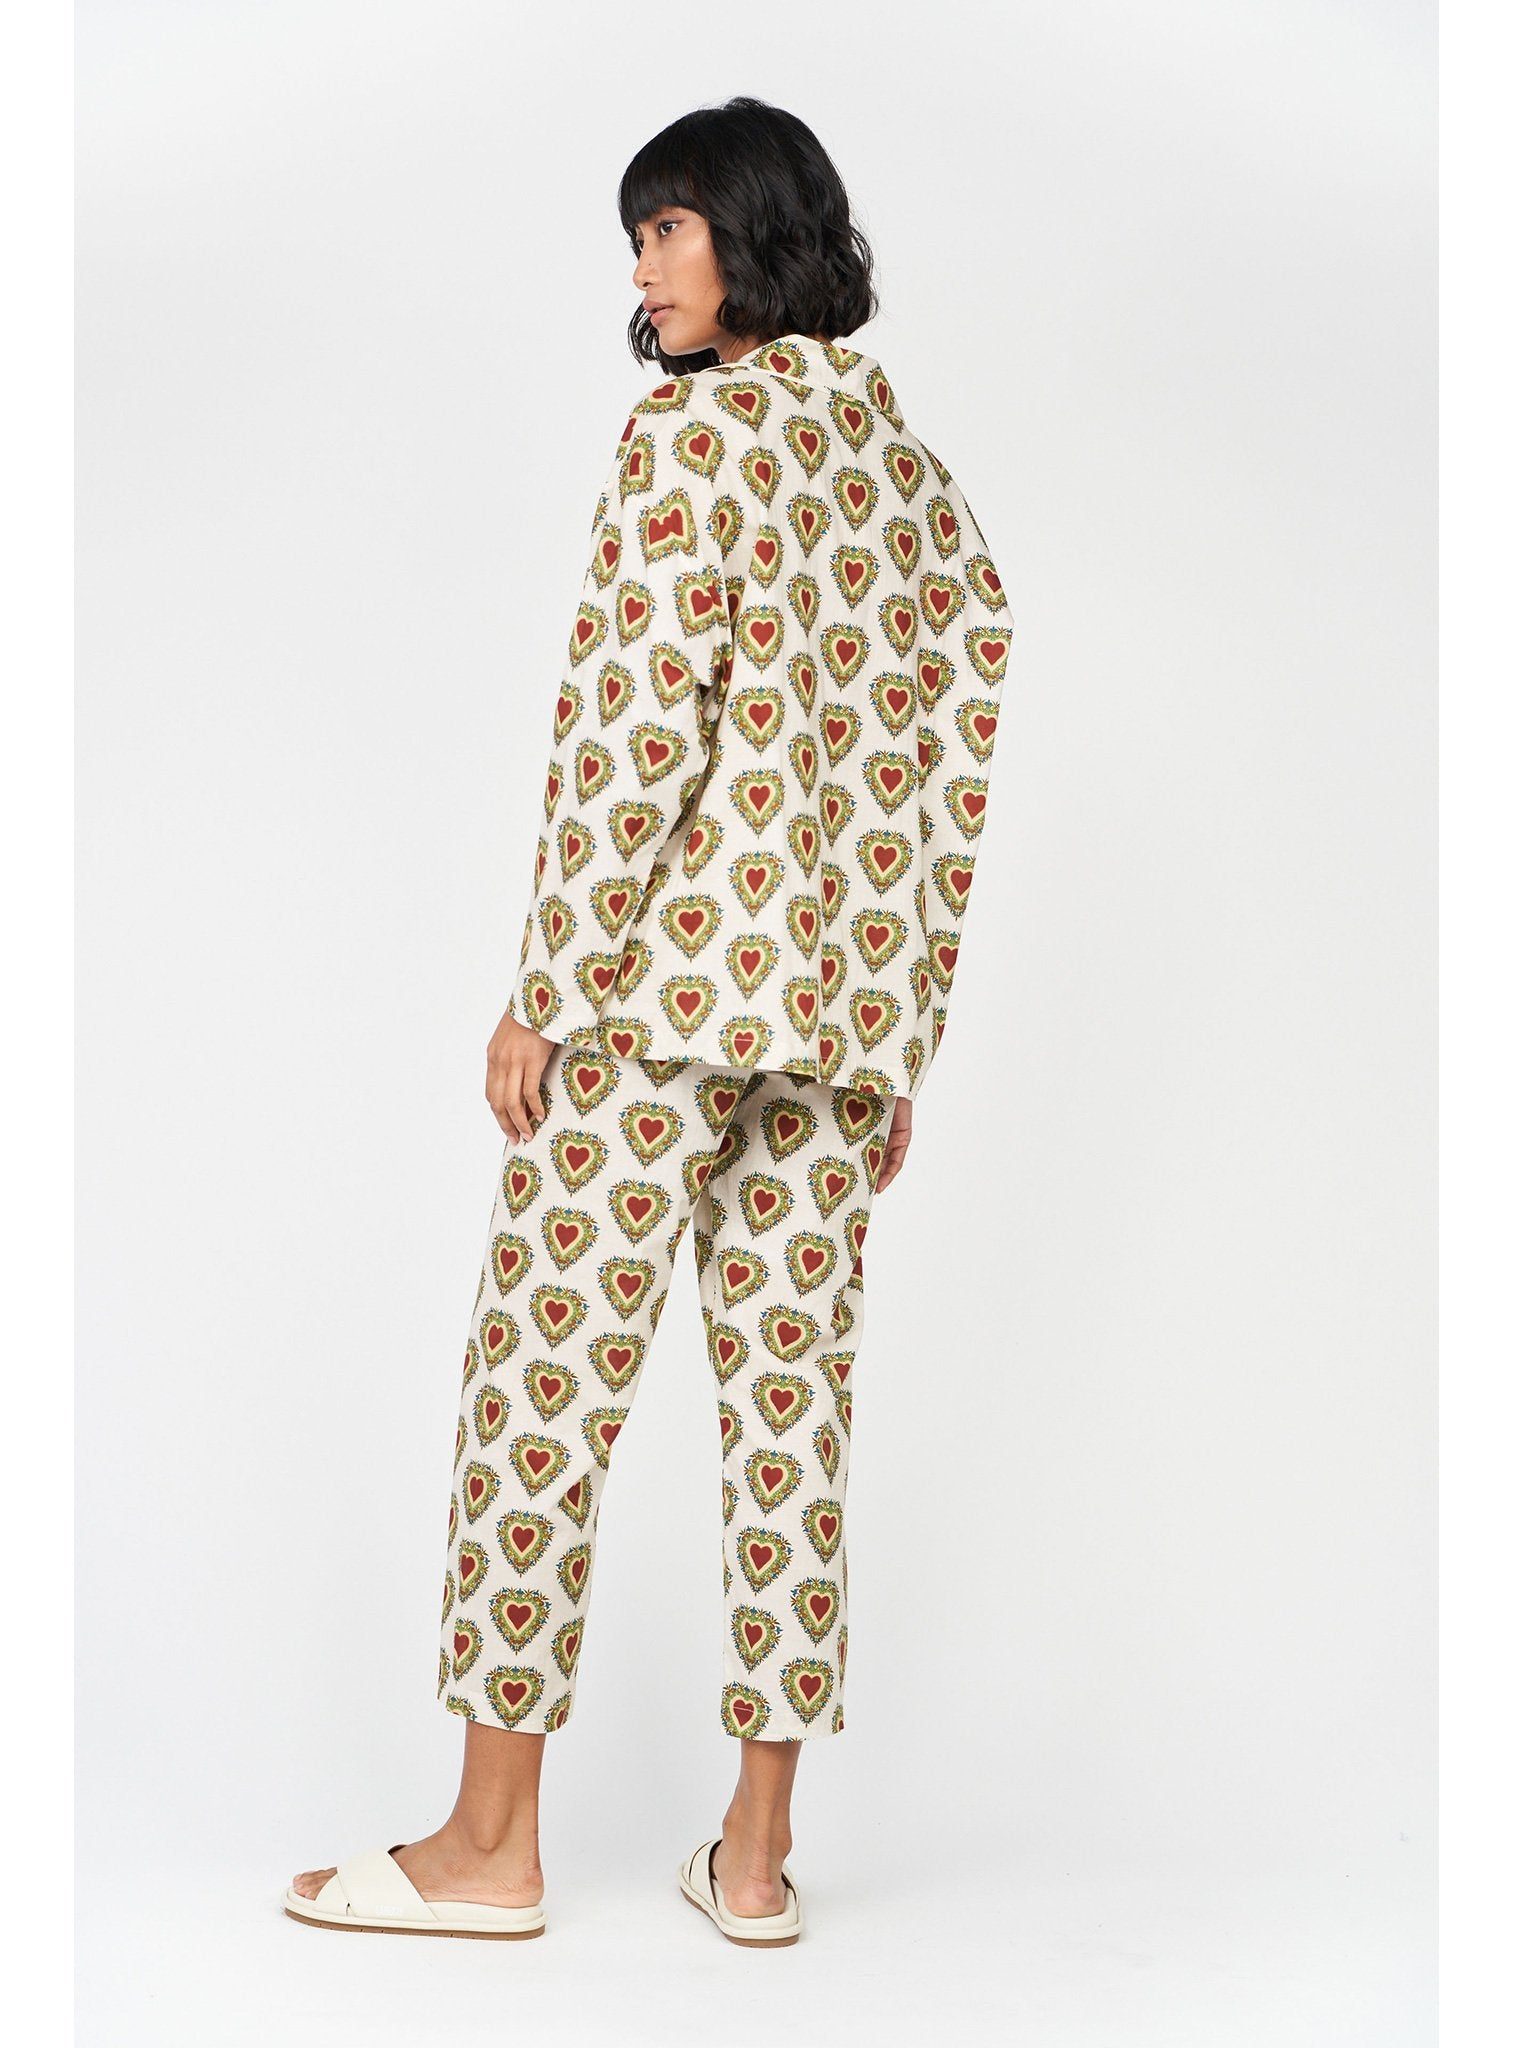 Berto Pajamas | Small Ivory Heart